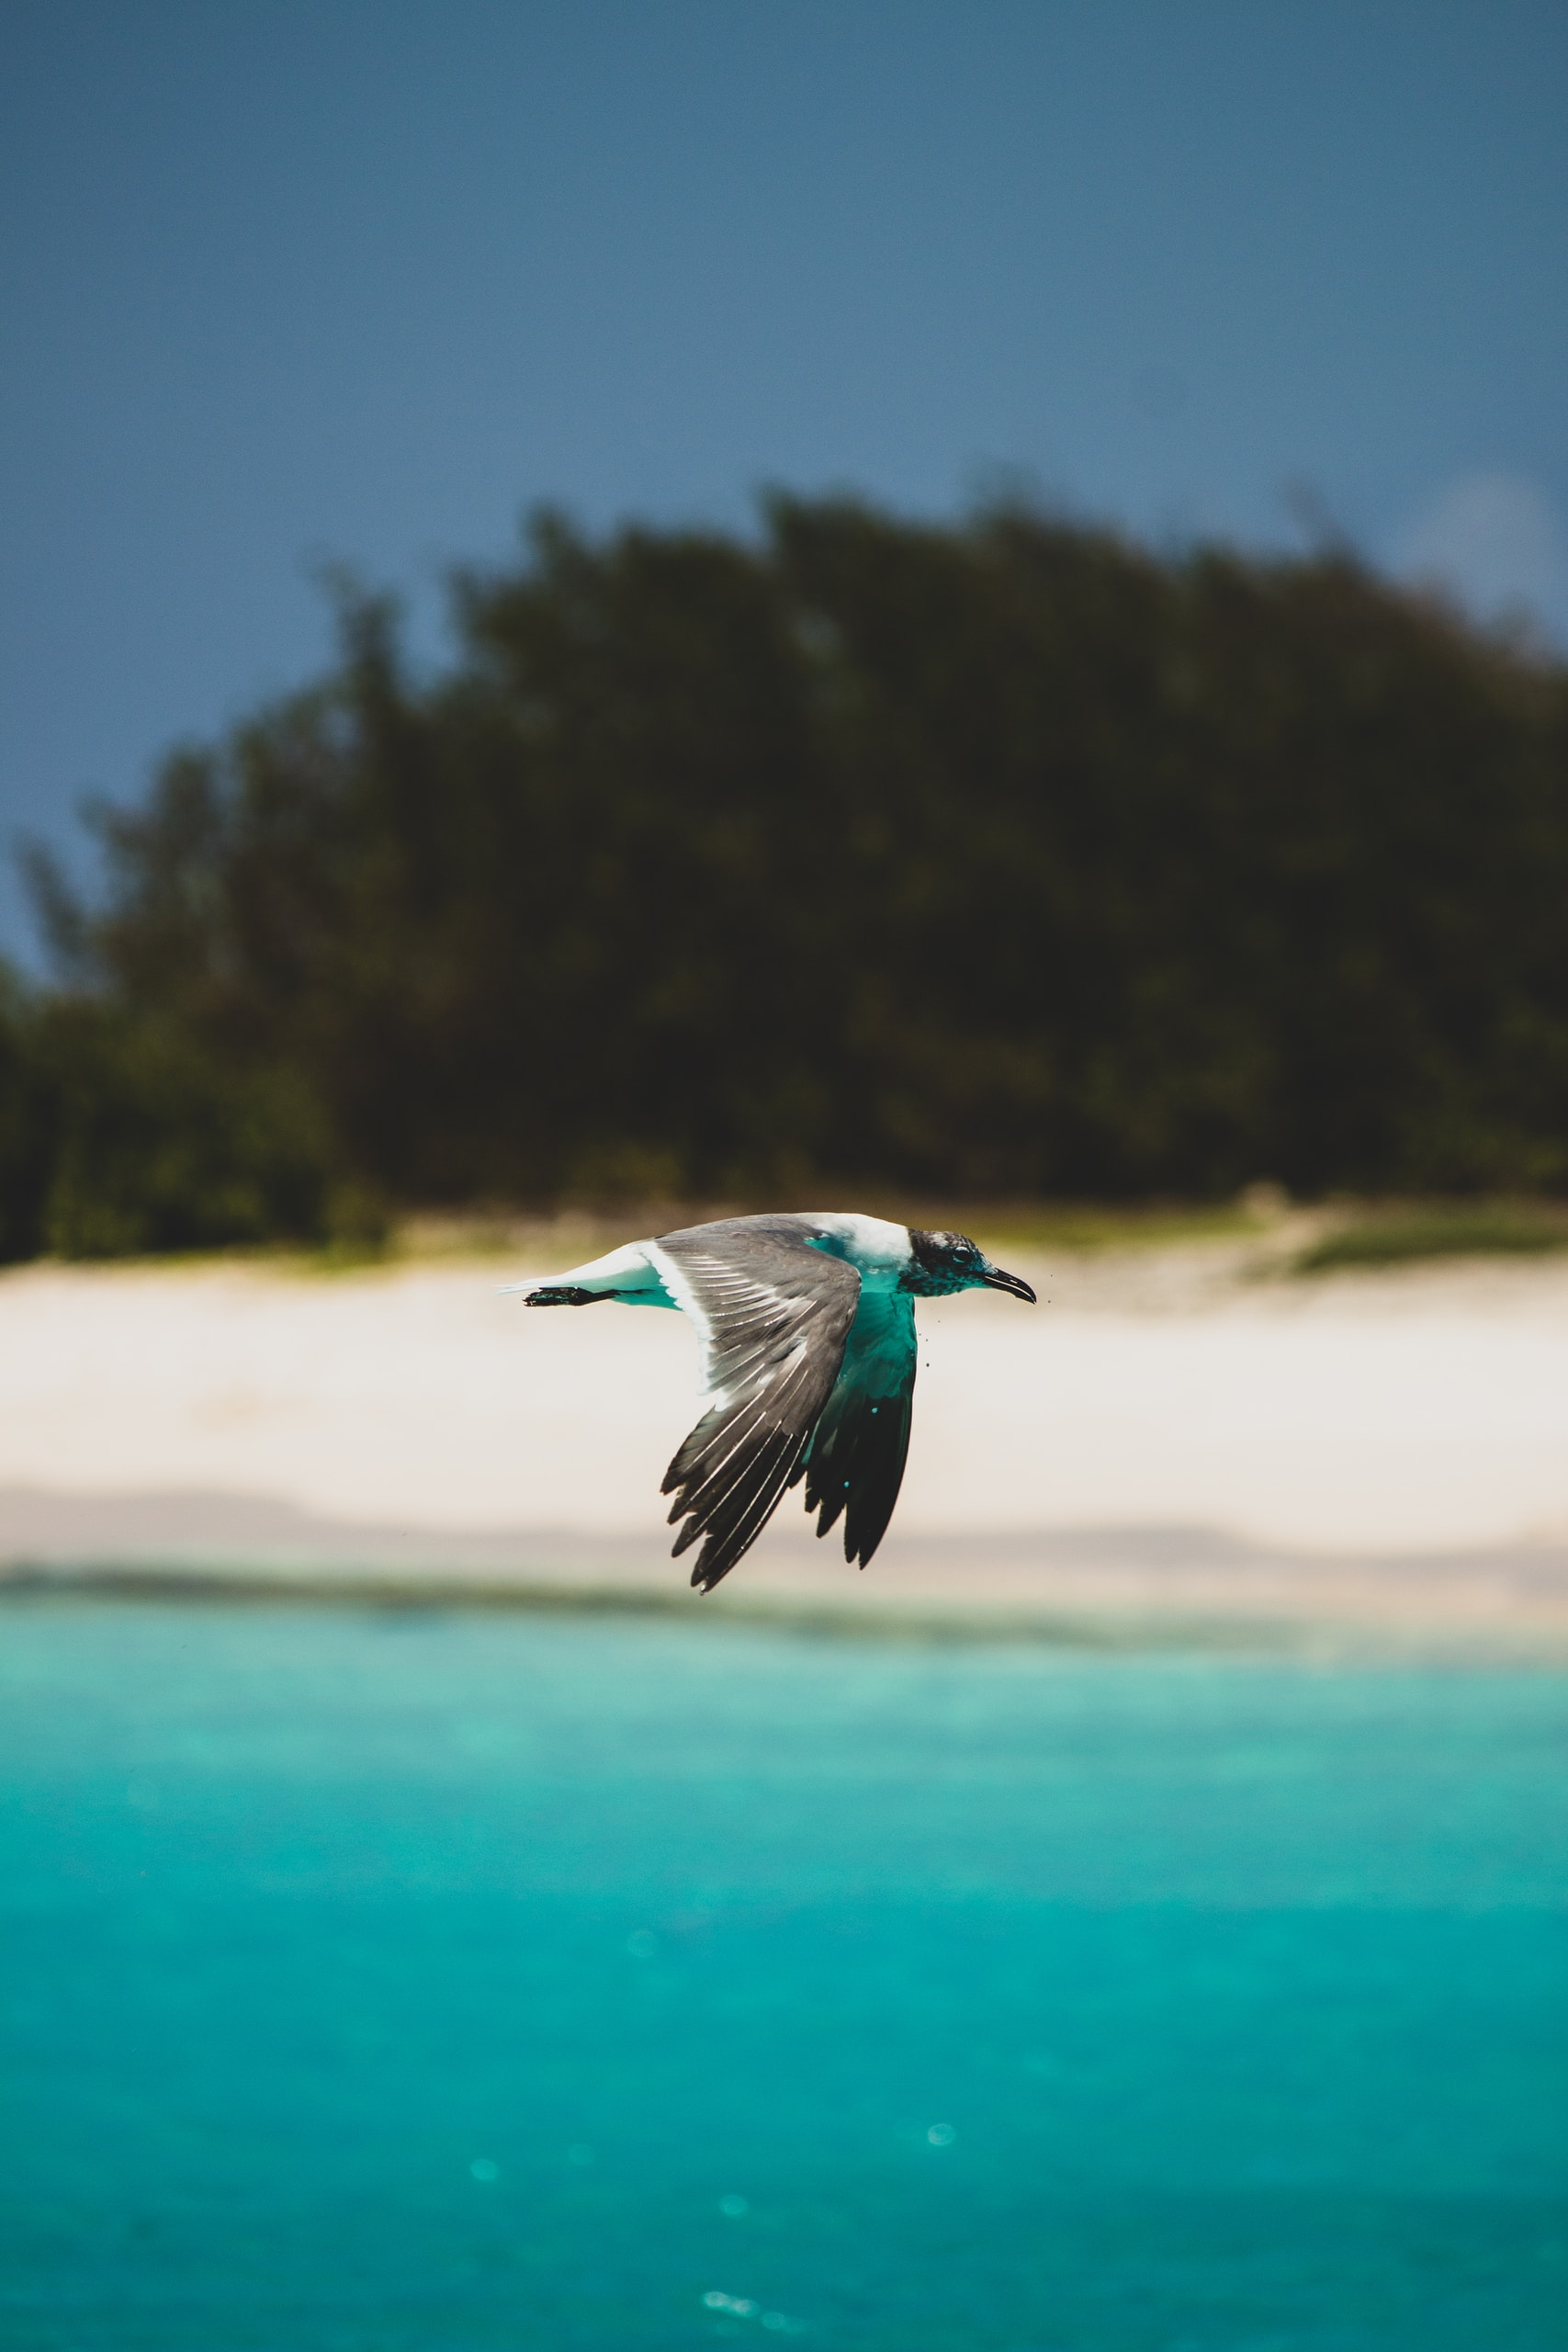 blue and white bird flying over the sea during daytime